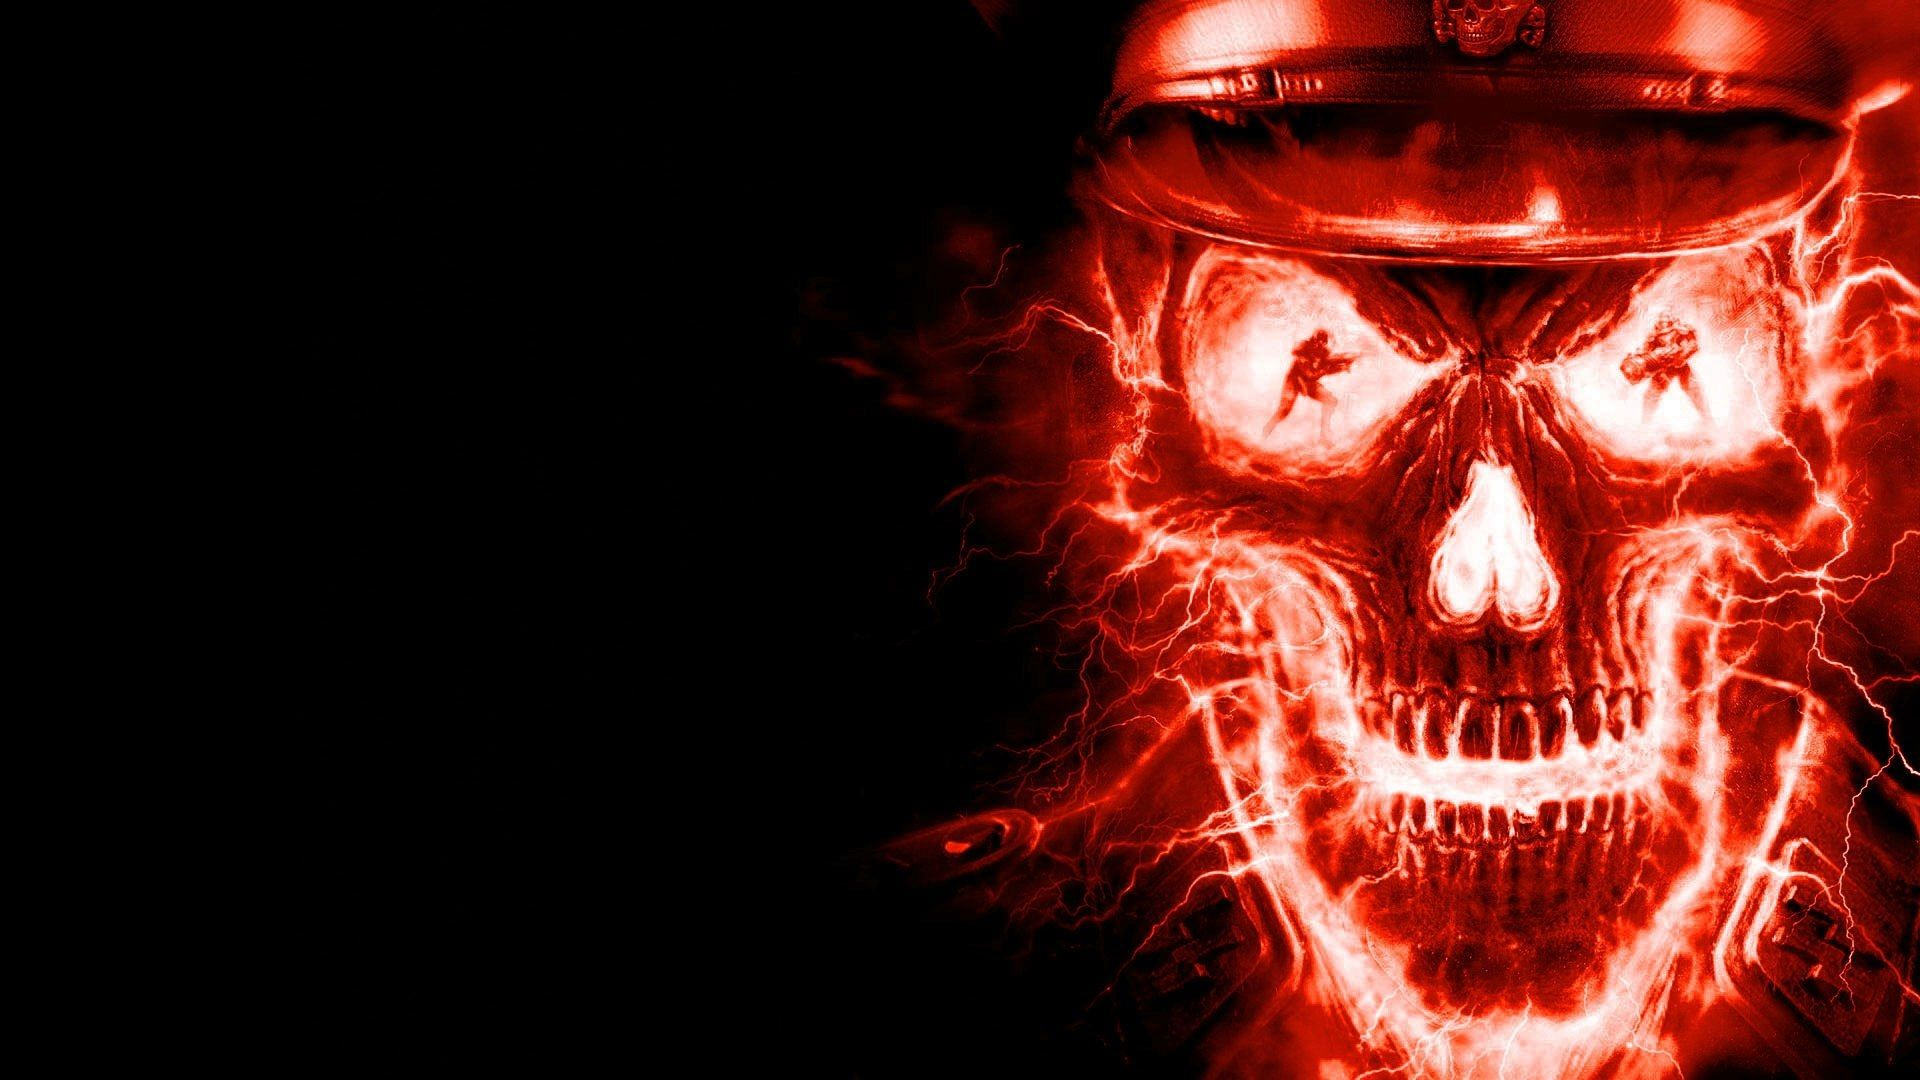 Fire Skull Wallpaper Free Download High 1920x1080px Music Skull Wallpaper 559726 Skull Wallpaper Black Skulls Wallpaper Fire Art